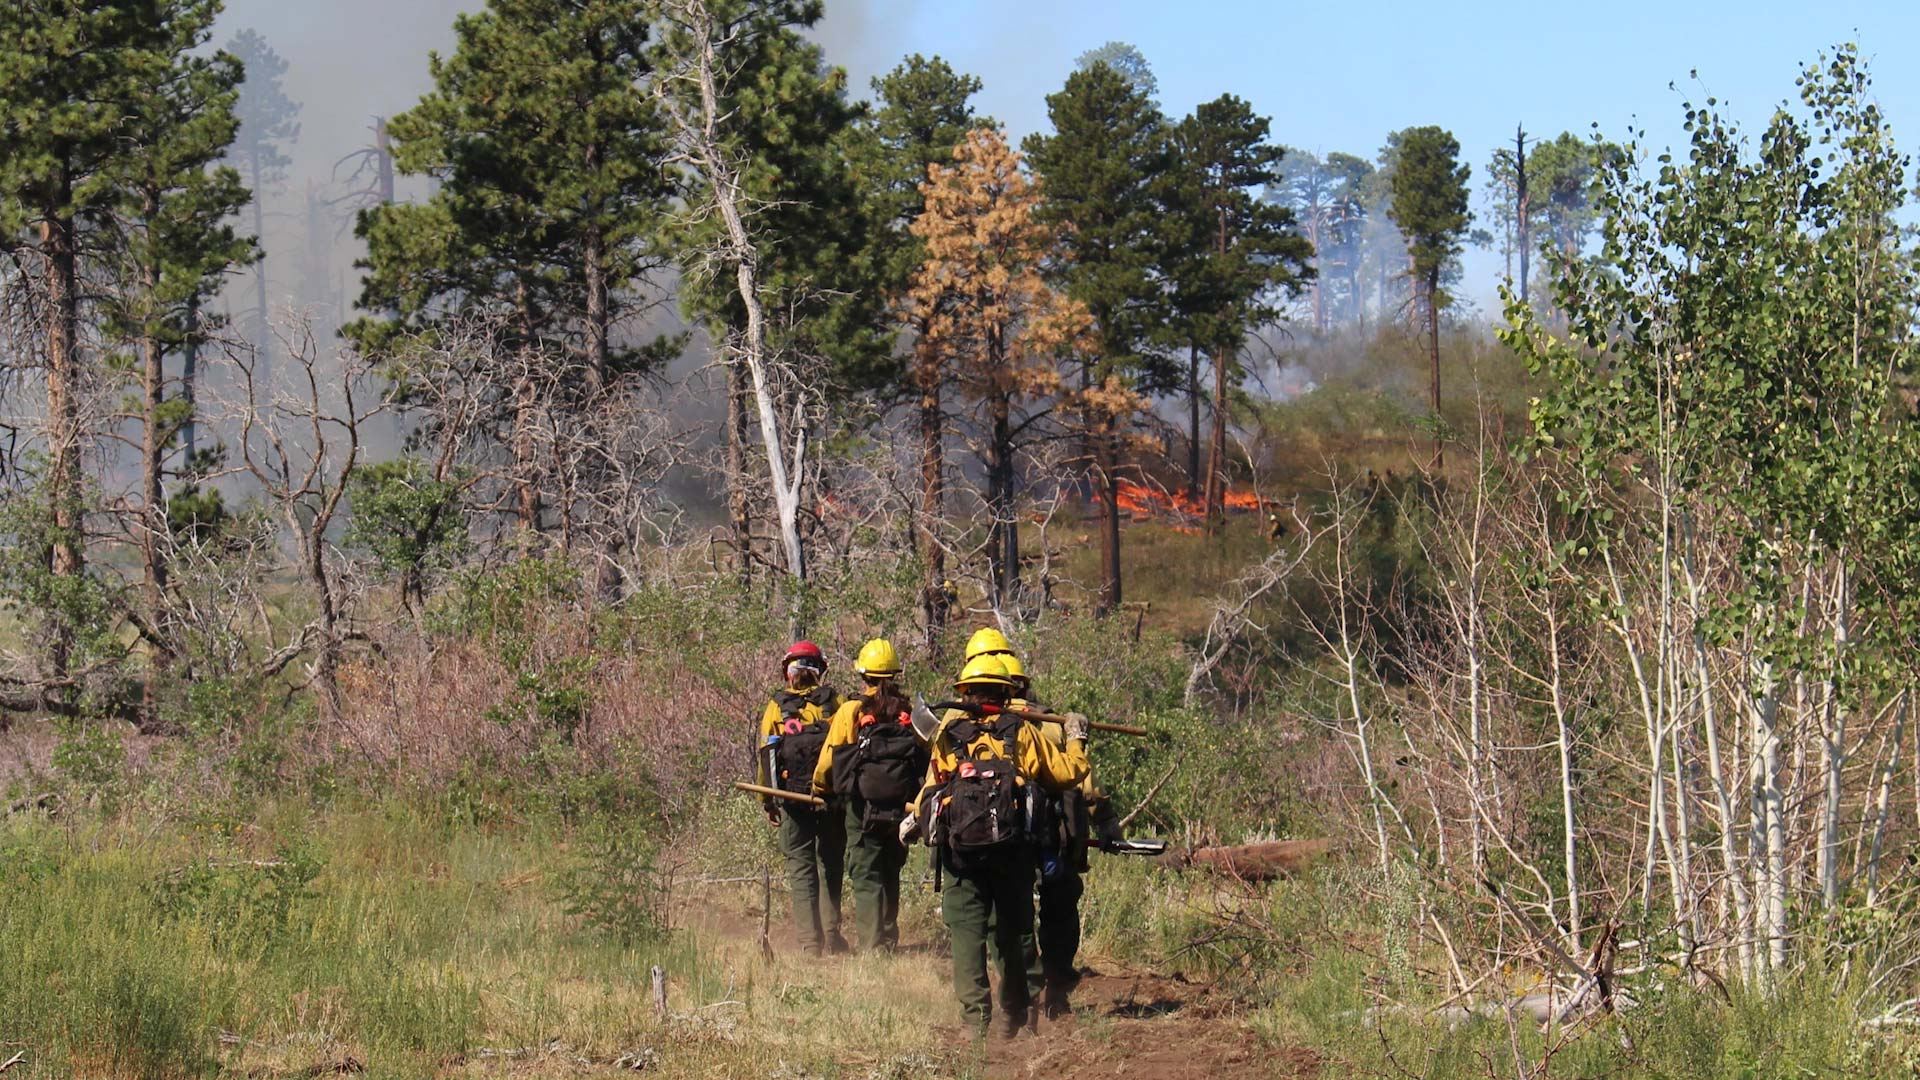 Firefighters assigned to the Obi Fire approach the fireline. Lightning caused the fire in Walhalla Plateau in Arizona on July 21, 2018.